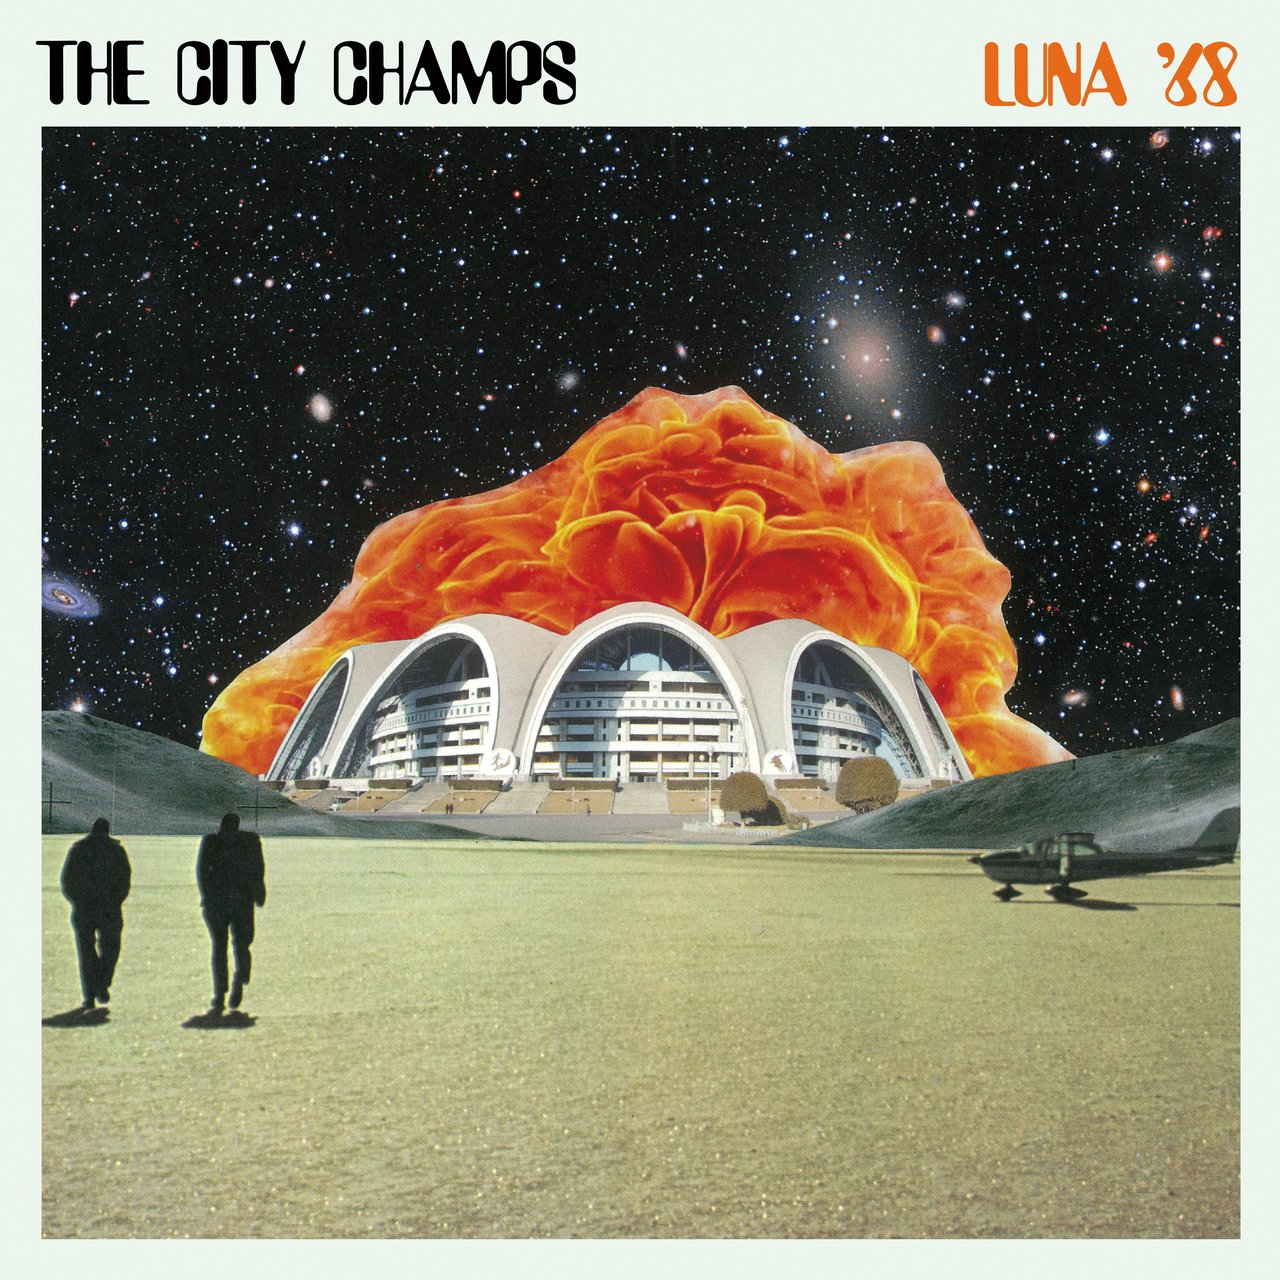 THE CITY CHAMPS - Luna '68 cover